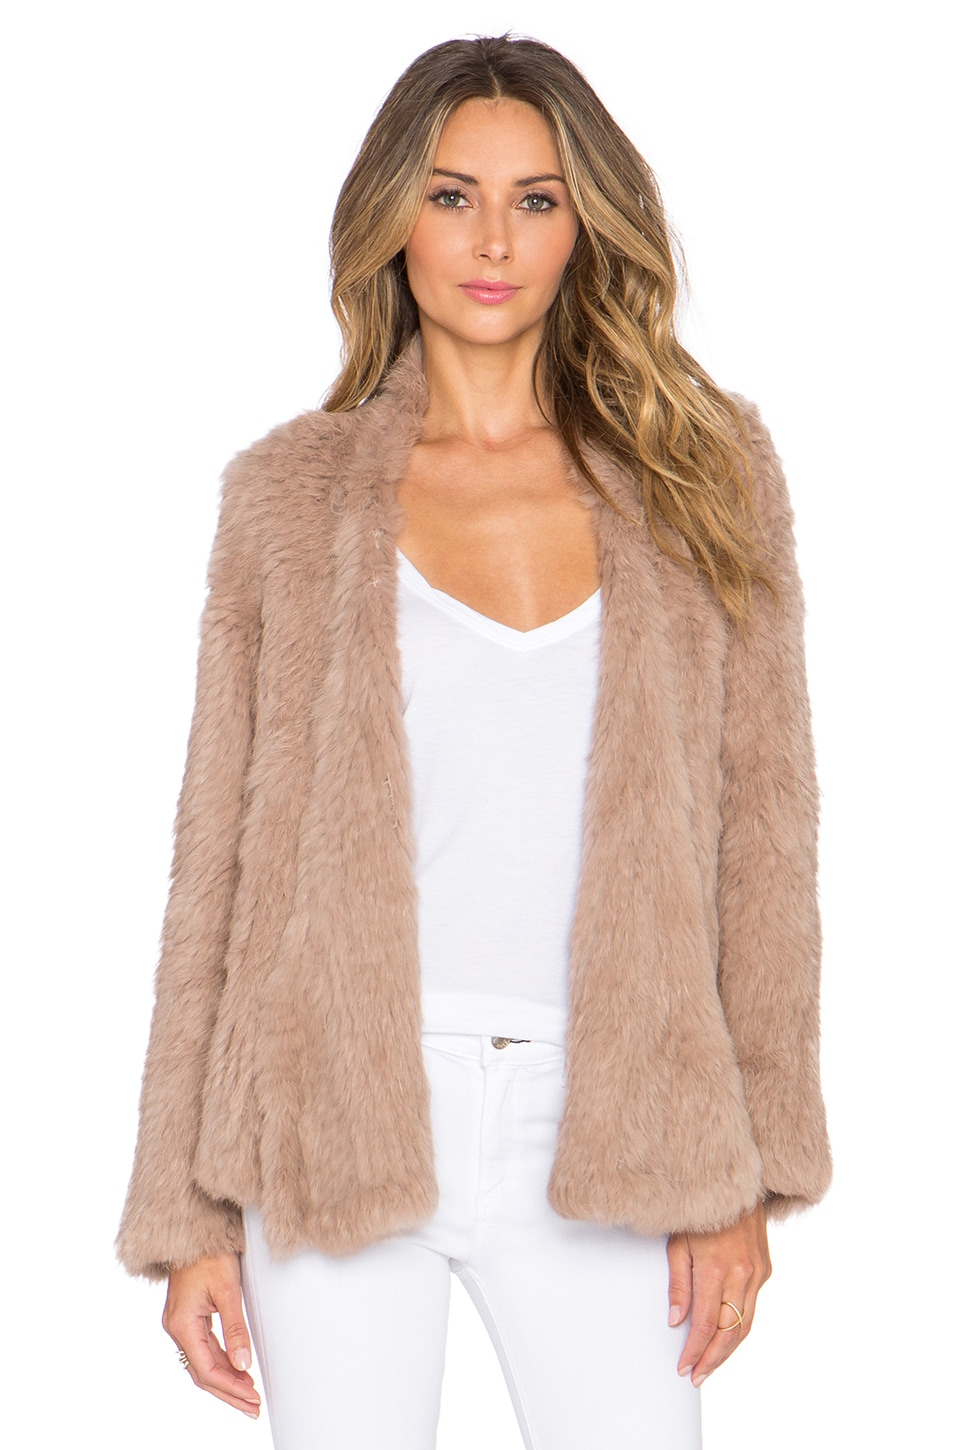 NICHOLAS Knitted Rabbit Fur Jacket in Taupe